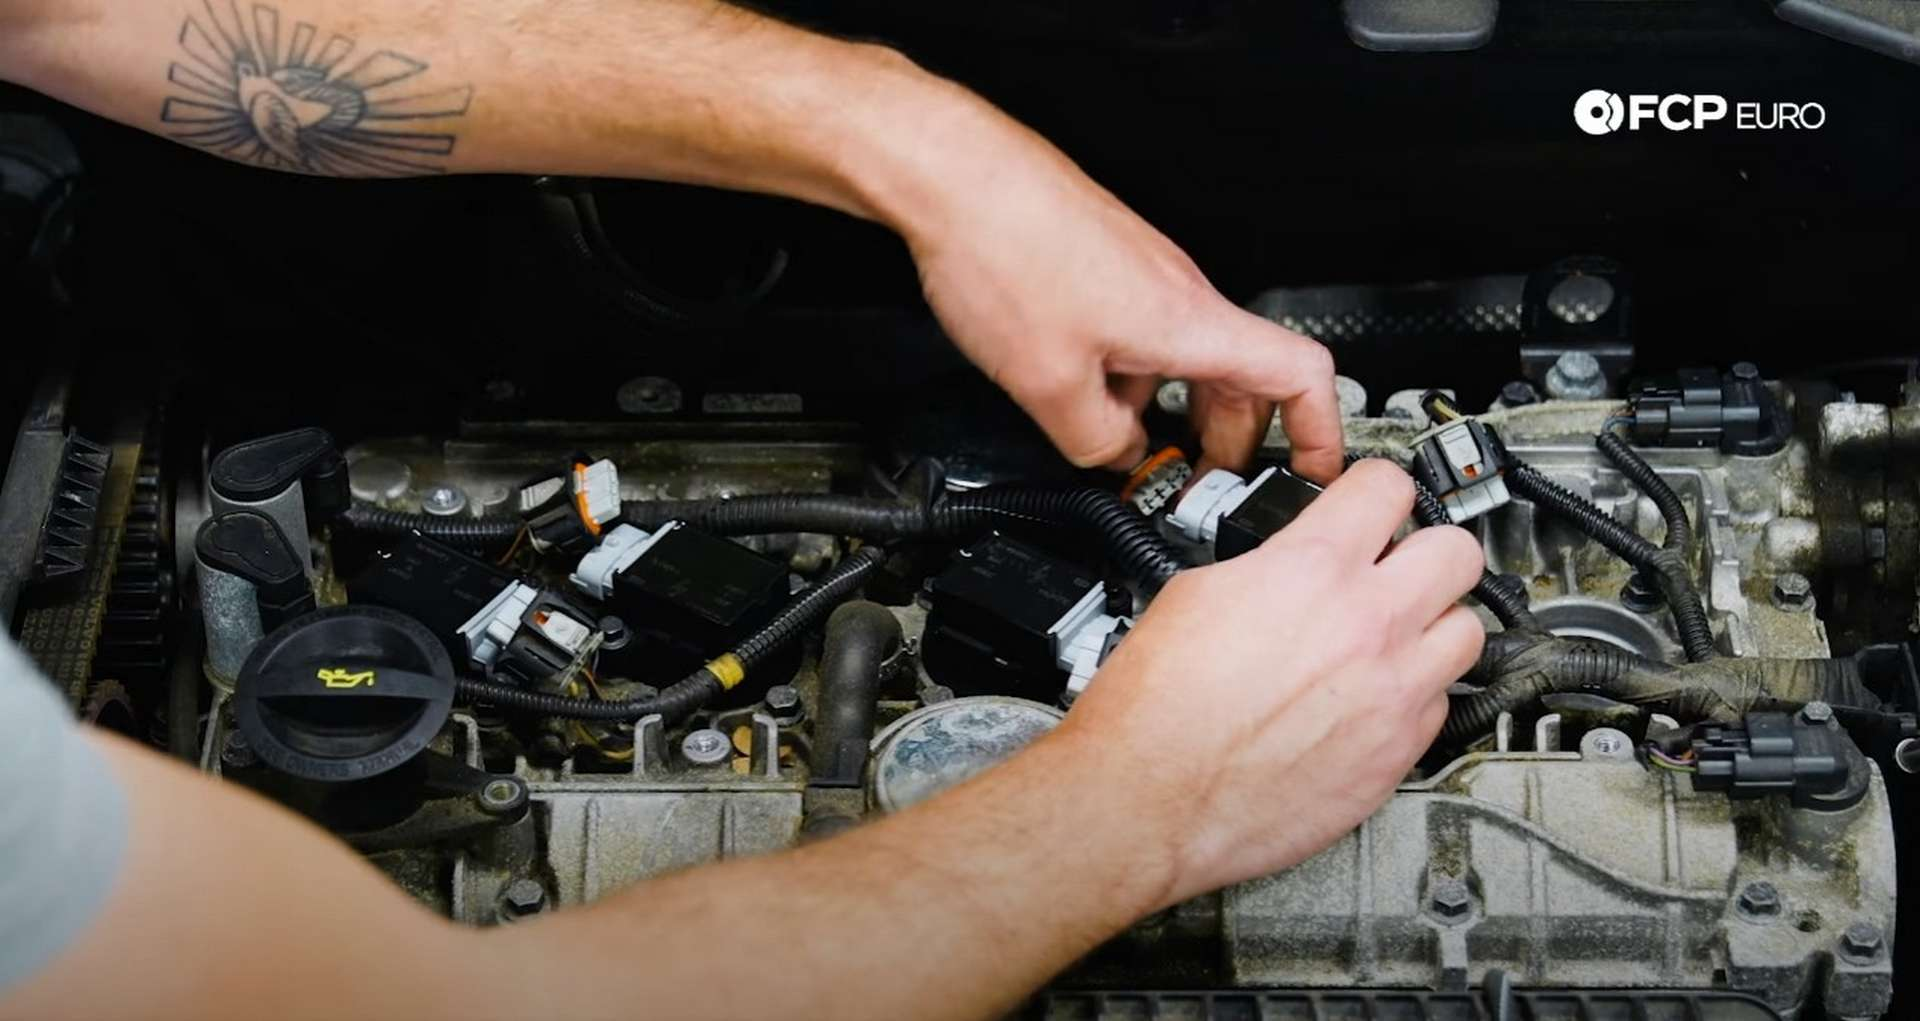 DIY Volvo Spark Plug and Ignition Coil Replacement installing the ignition coil]